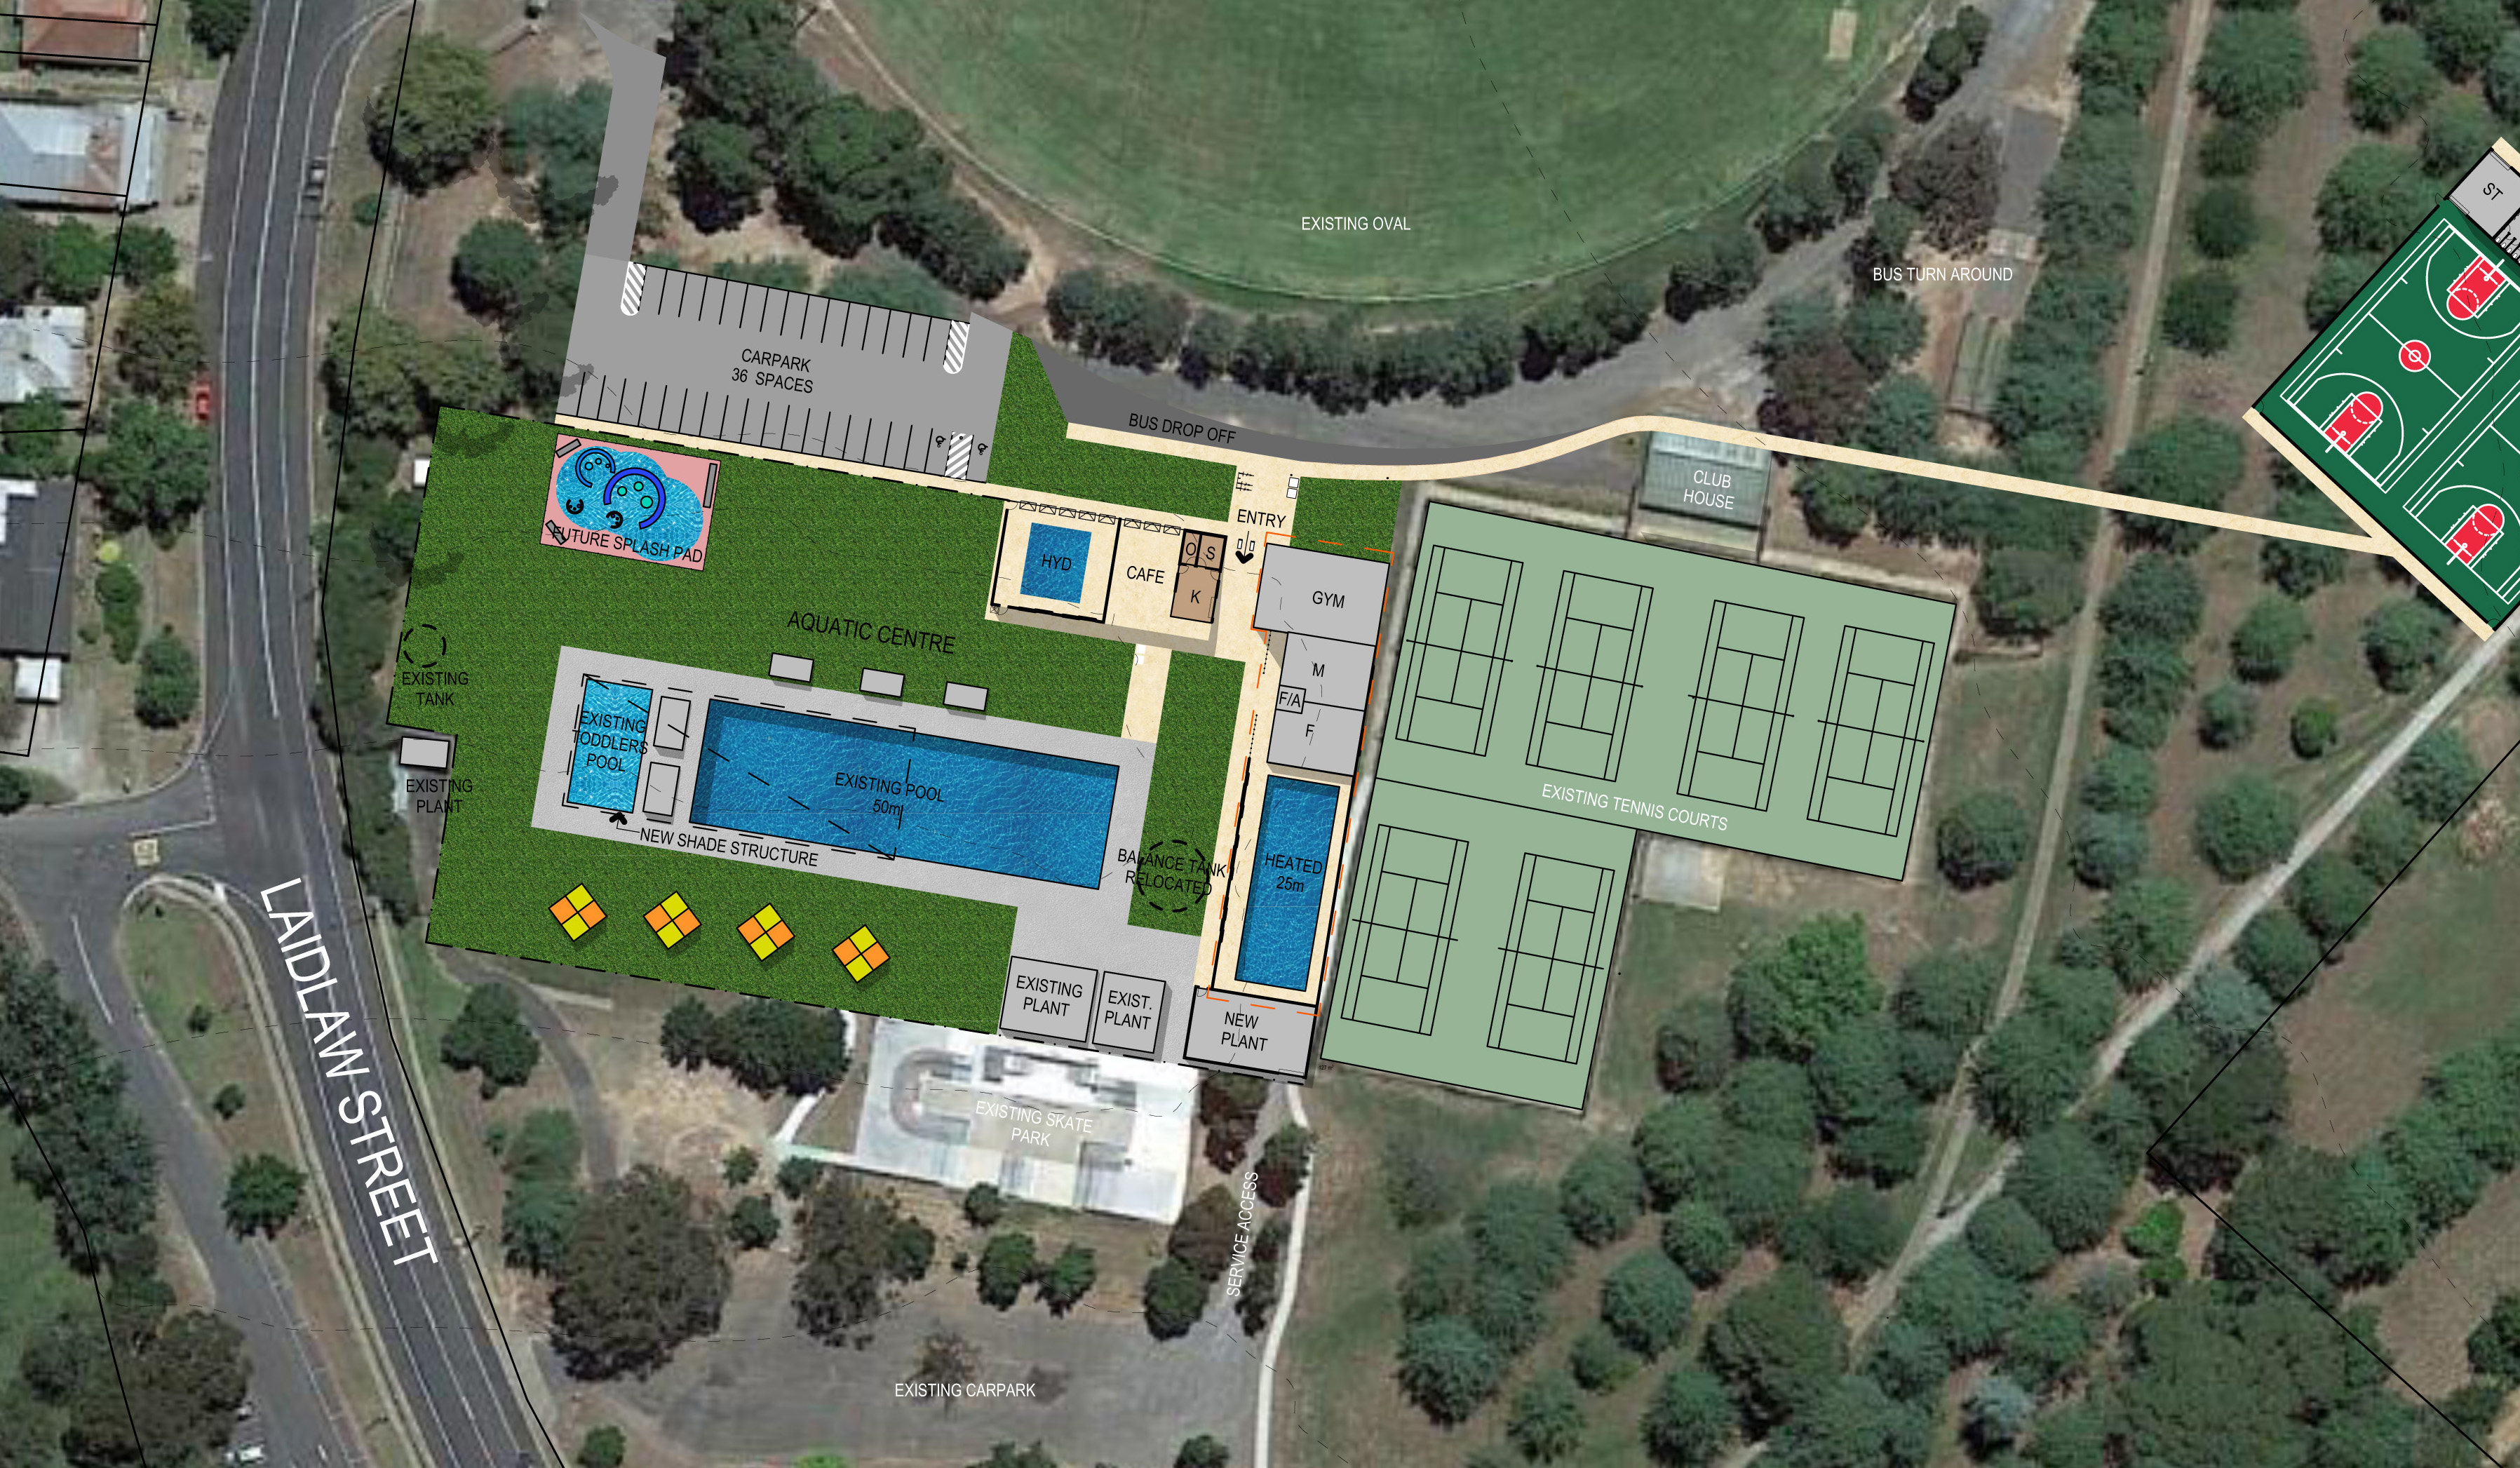 Yass Indoor Heated Swimming Pool and Sports Facility